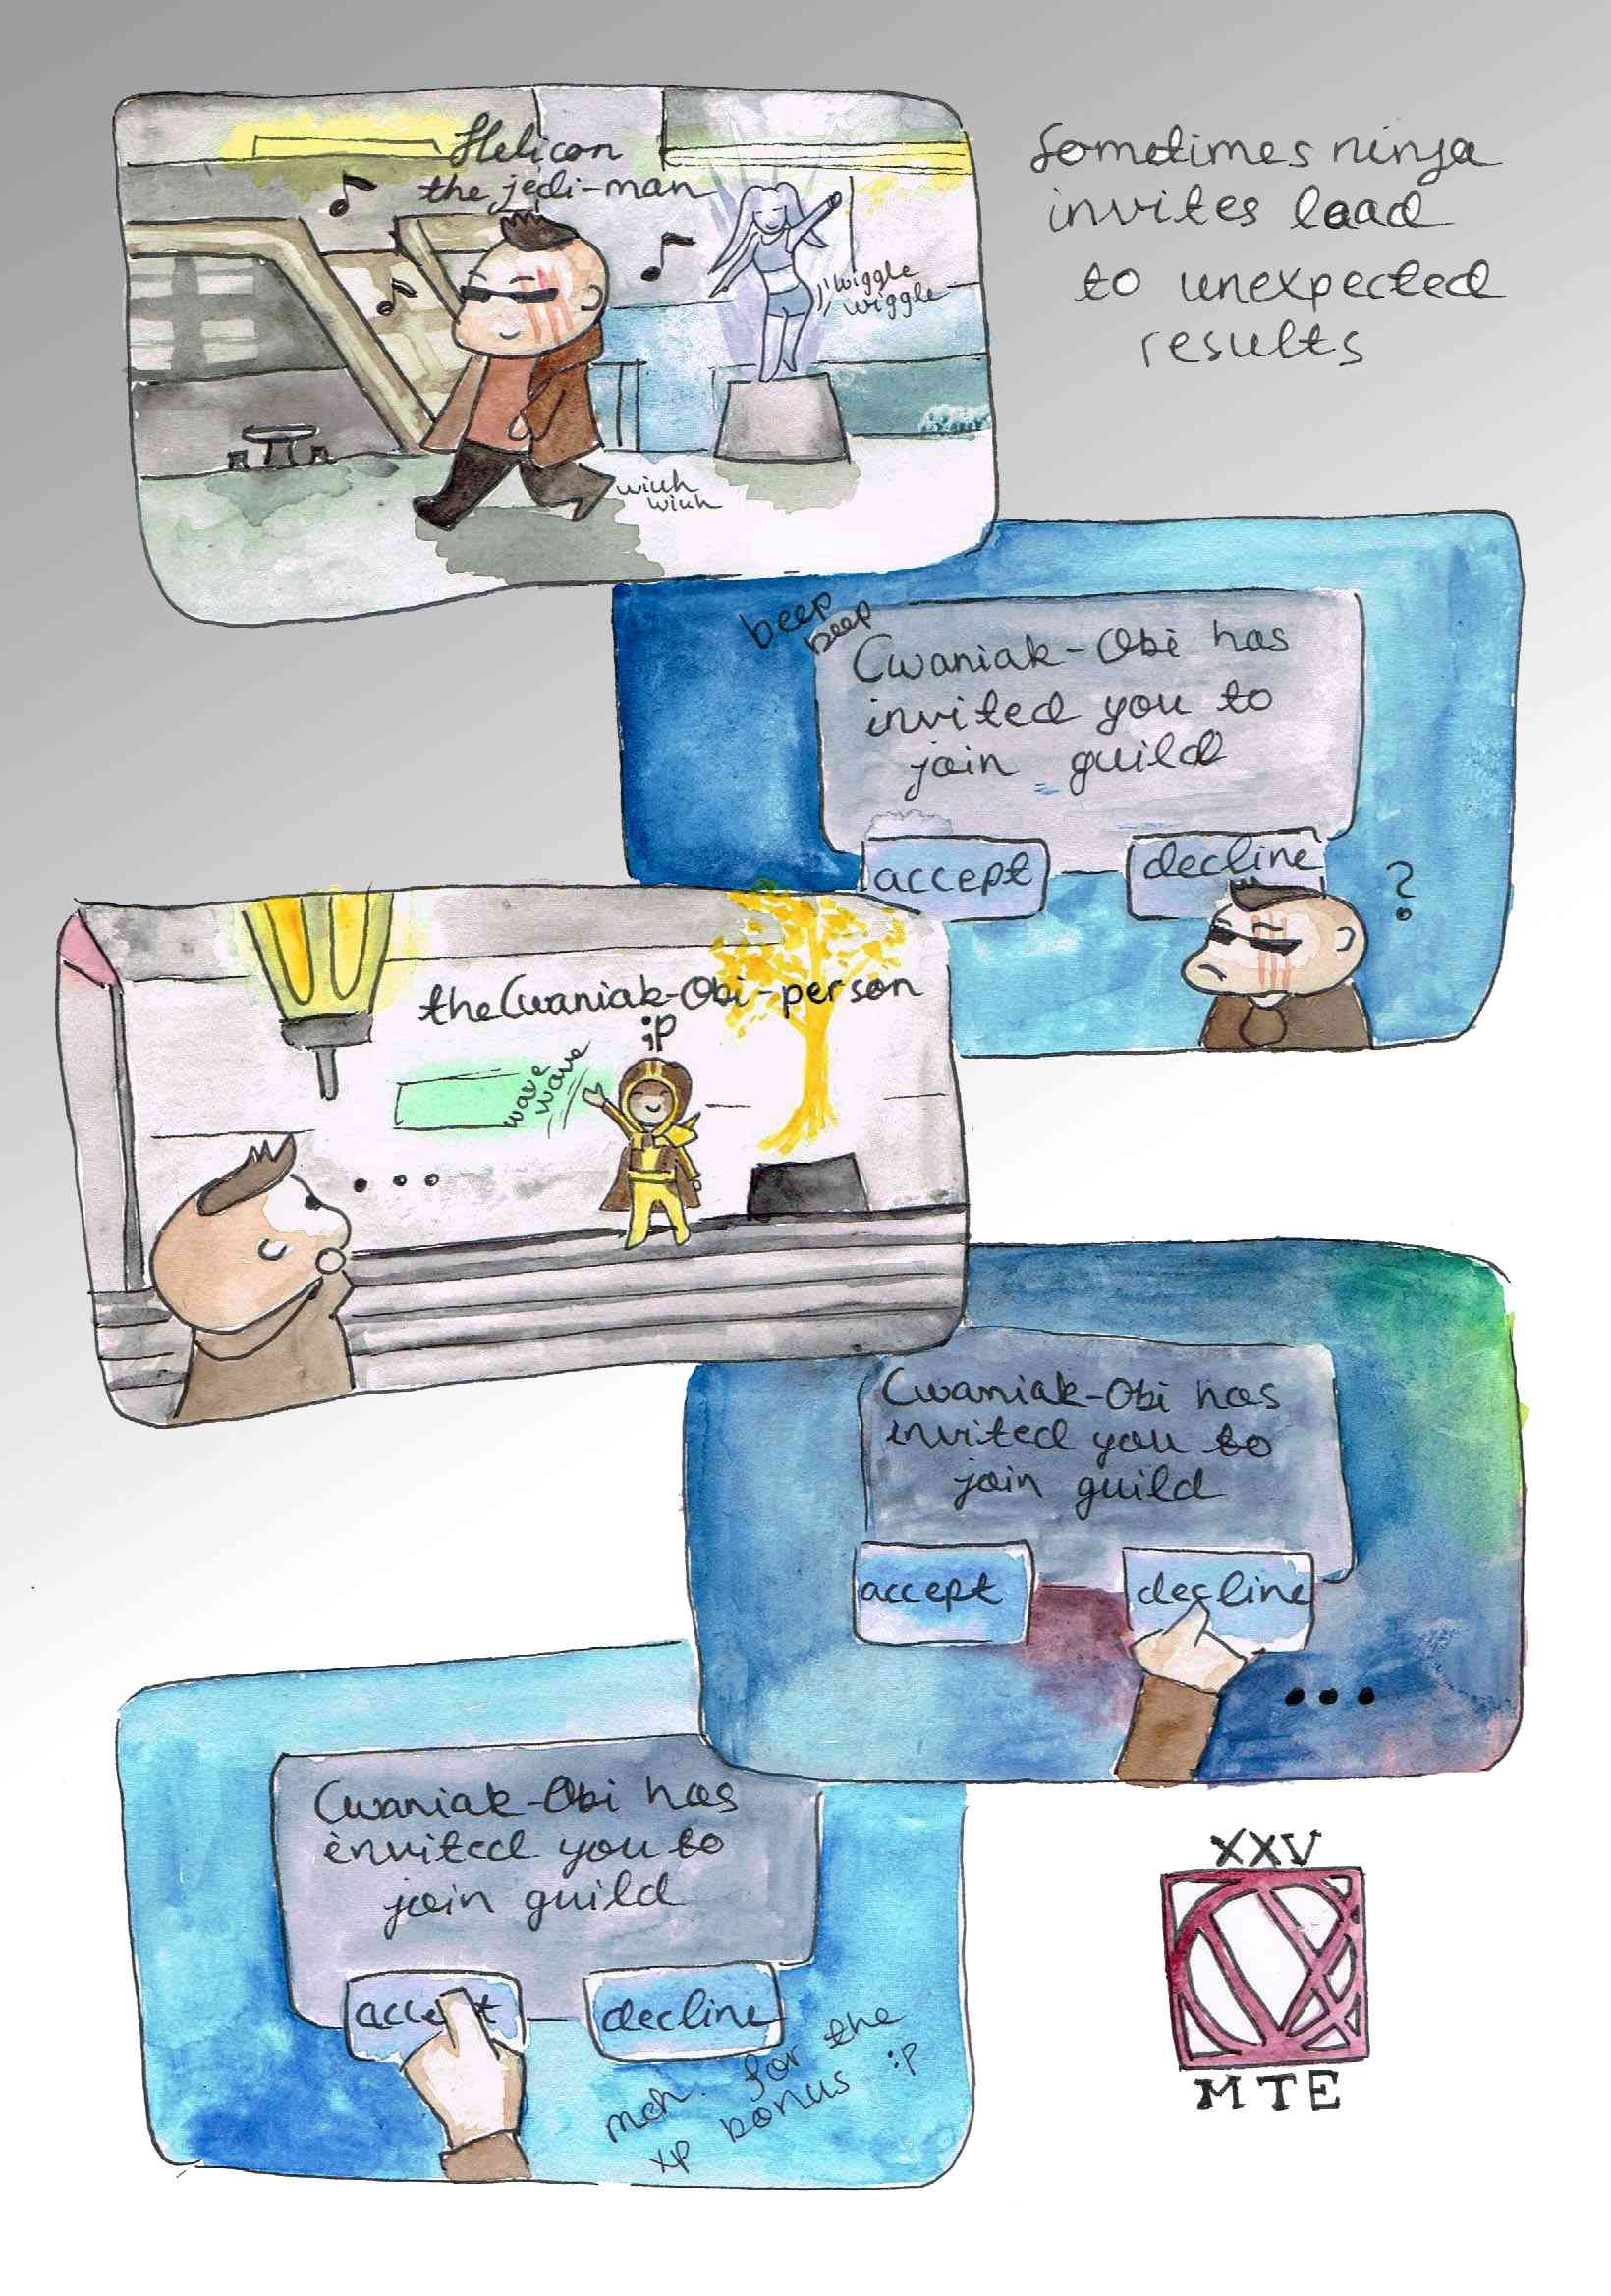 Sometimes ninja invites lead to unexpected ends (comic) Mte_0011